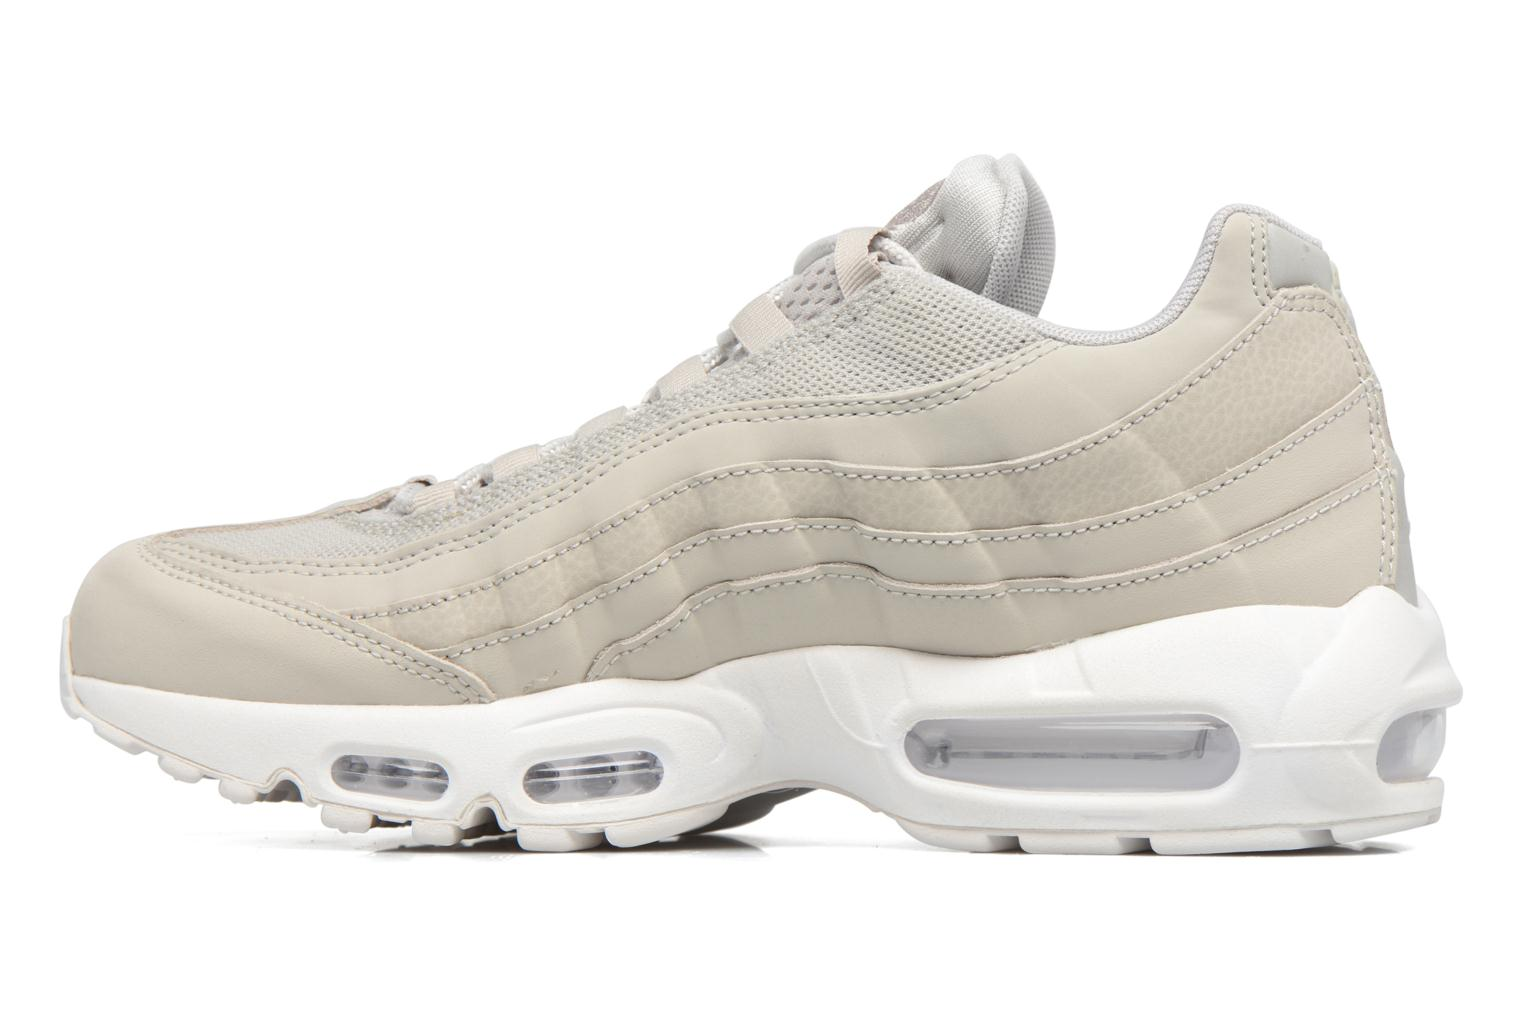 Nike Air Max 95 Essential PALE GREY/PALE GREY-SUMMIT WHITE